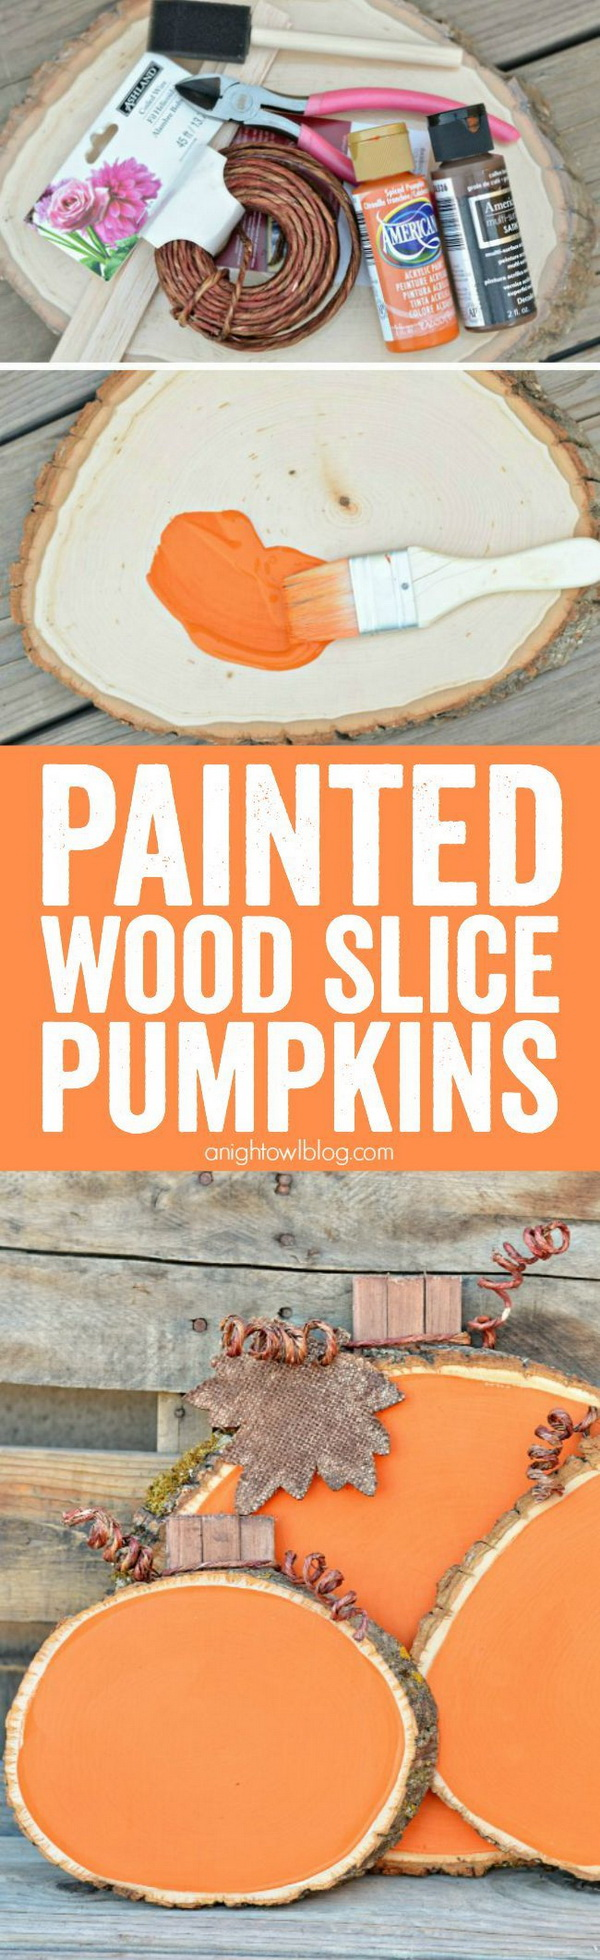 DIY Painted Wood Slice Pumpkins. Create these adorable wooden pumpkins with wood slices and some chalkpaint. They will add some color and whimsy to your Fall decor!